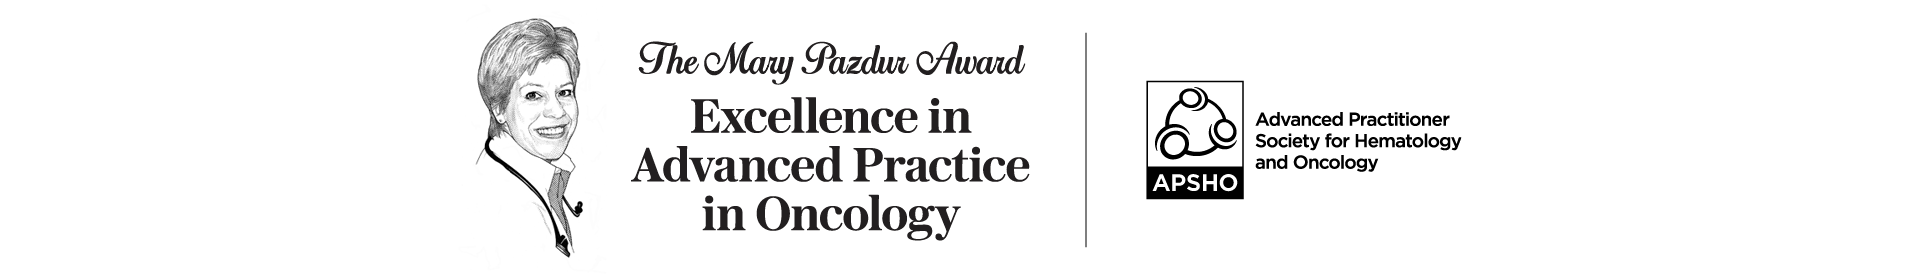 The Mary Pazdur Award for Excellence in Advanced Practice in Oncology 2020 Event Banner